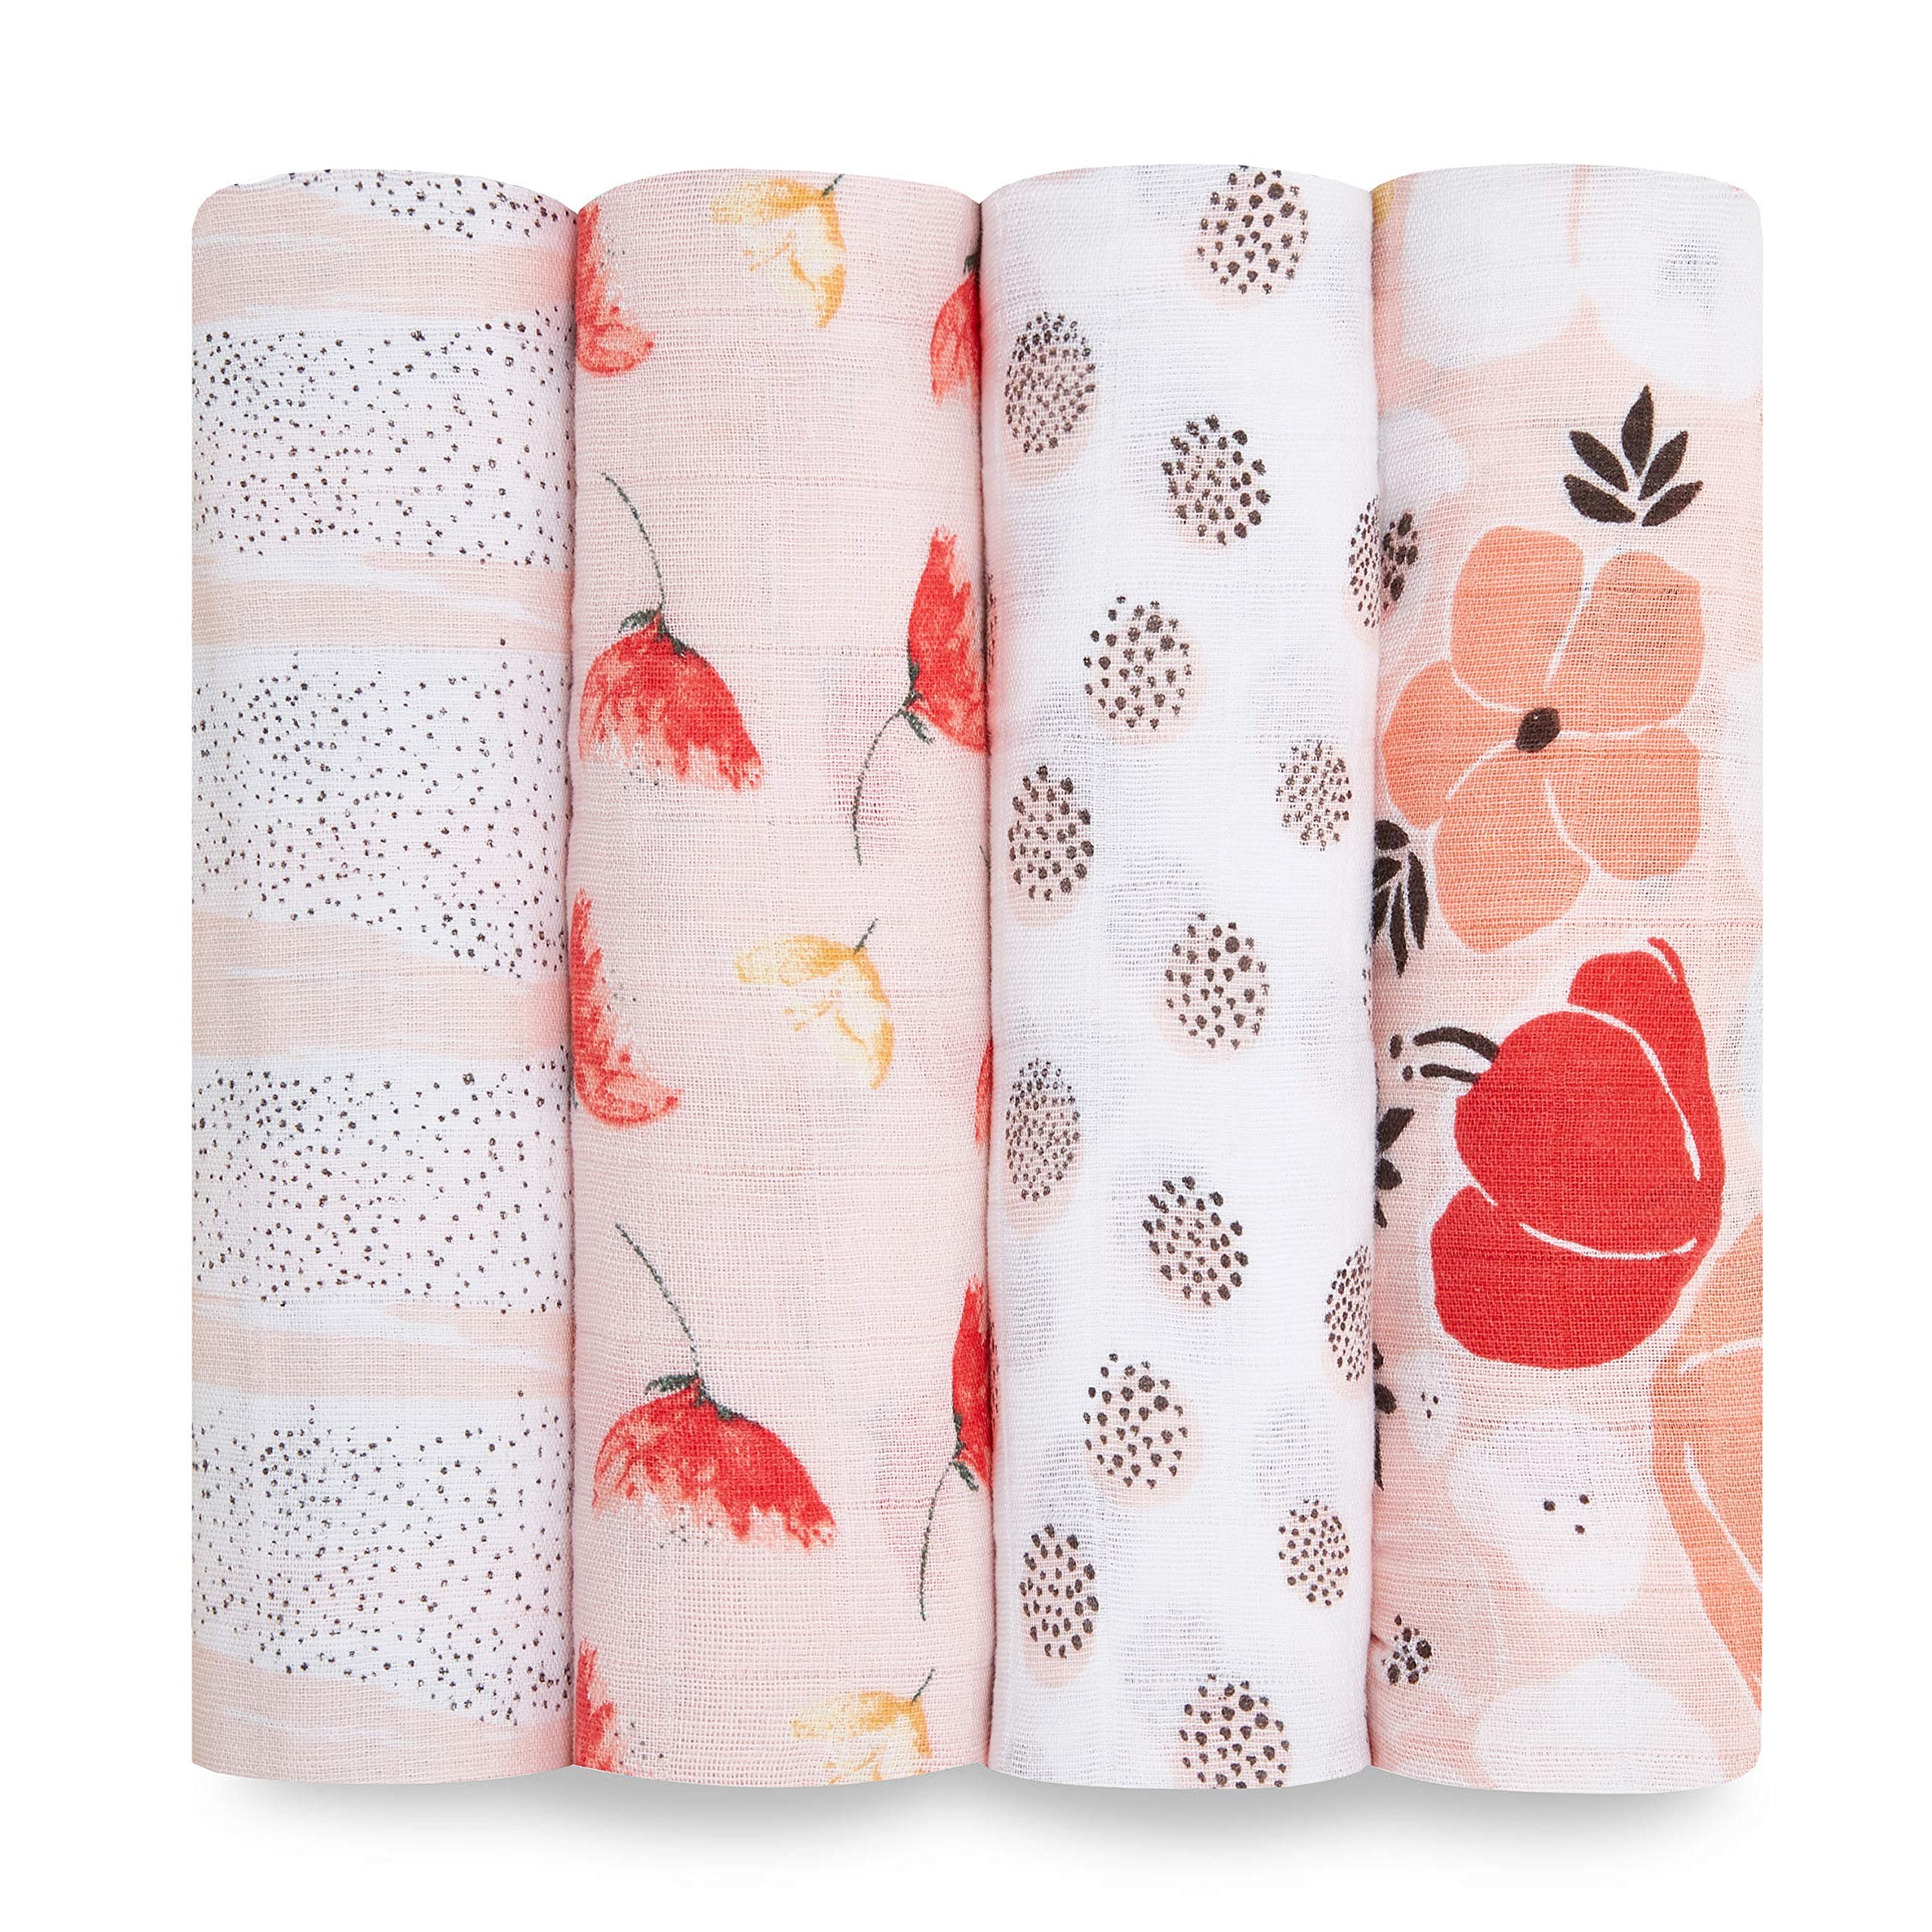 aden + anais Swaddle Blanket, Boutique Muslin Blankets for Girls & Boys, Baby Receiving Swaddles, Ideal Newborn & Infant Swaddling Set, Perfect Shower Gifts, 4 Pack, Picked for You